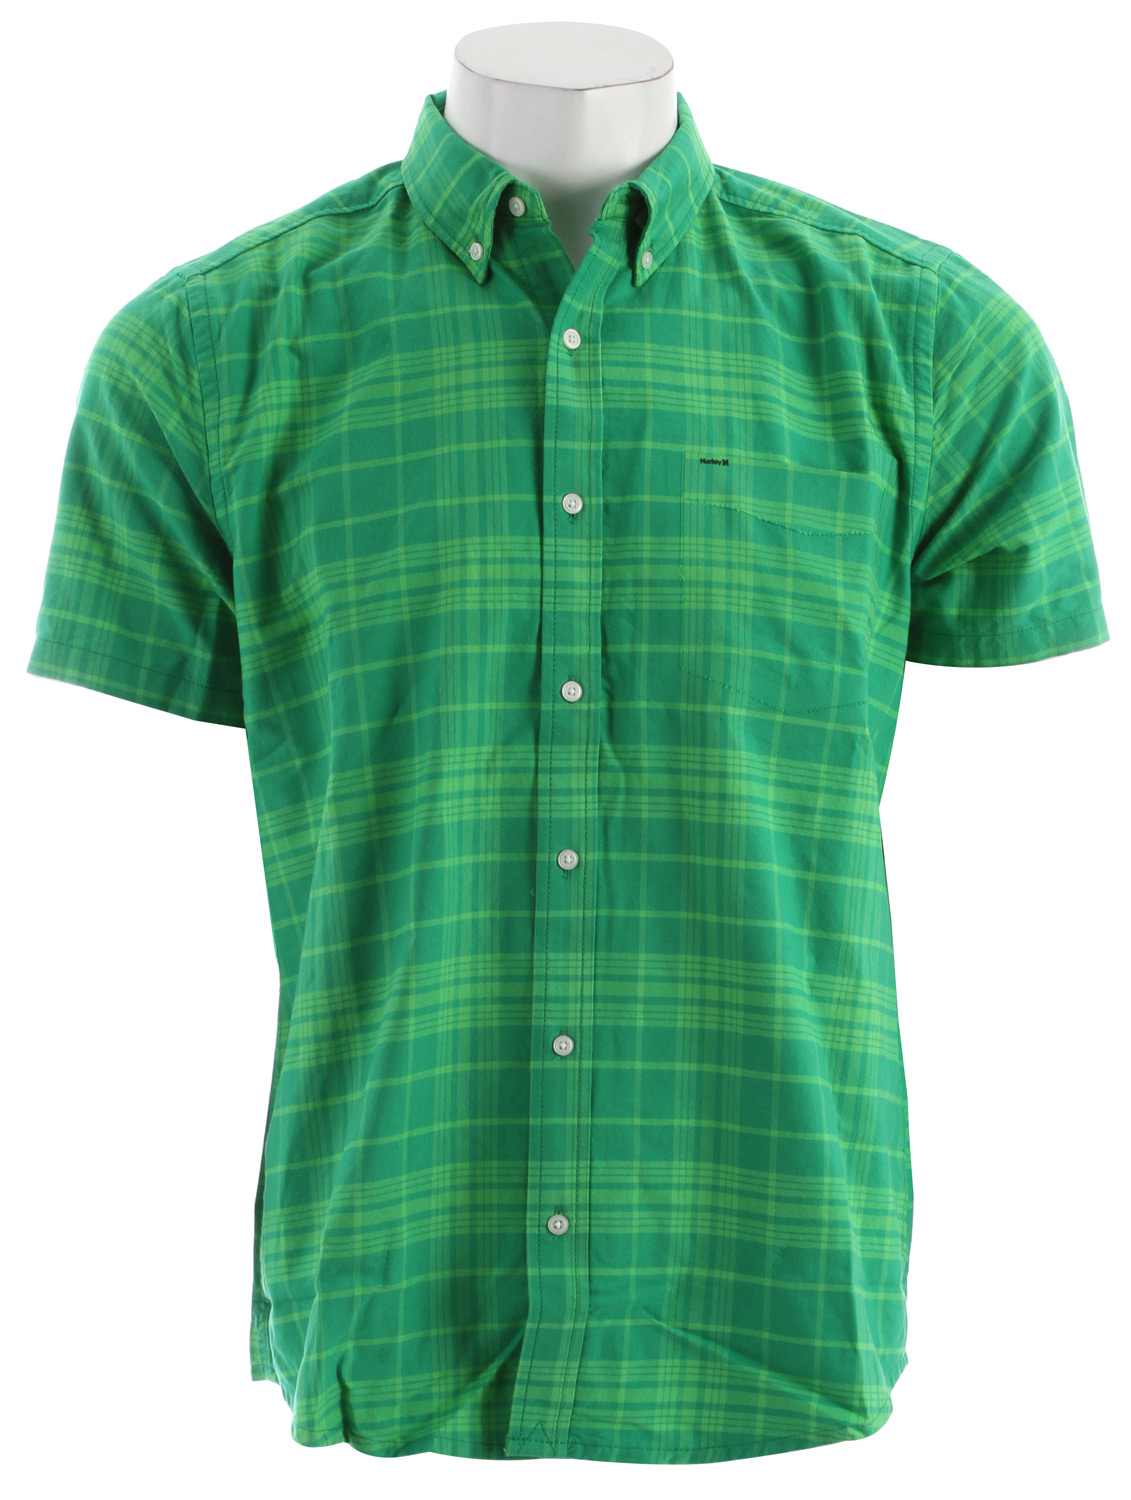 Surf Key Features of the Hurley Ace Oxford Shirt: Regular Fit 100% Cotton Oxford Traditional short sleeve cotton oxford shirt with modern twists Bonded left chest pocket. Pearl button closure and pearl button down collar High density Hurley on left chest pocket, high density color bar under center front placket. - $33.56